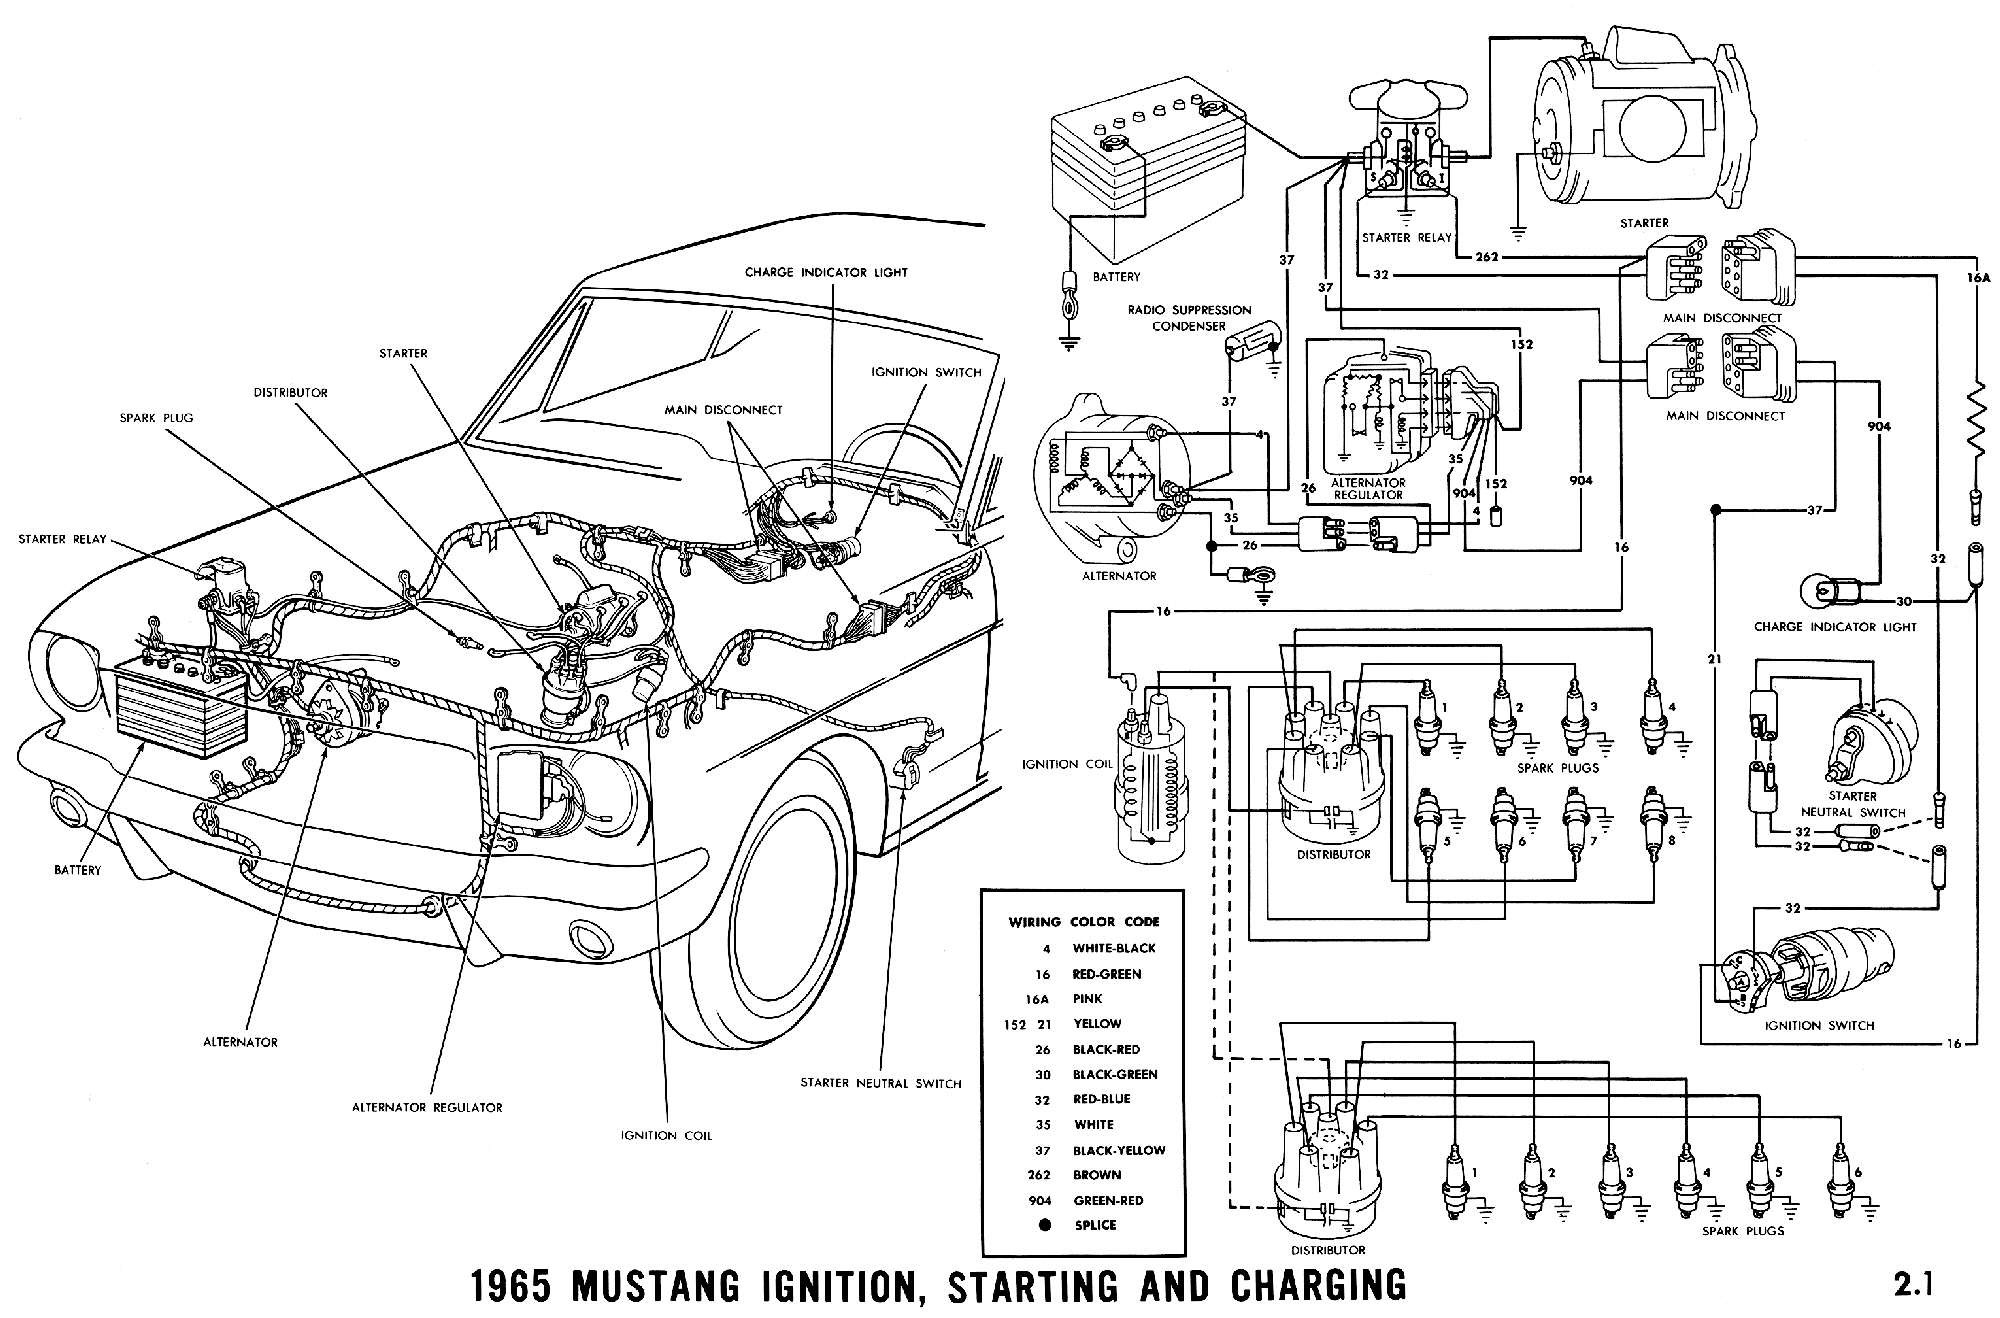 Car Engine Diagram with Labeled 2015 Mustang Engine Diagram Engine Car Parts and Ponent Diagram Of Car Engine Diagram with Labeled